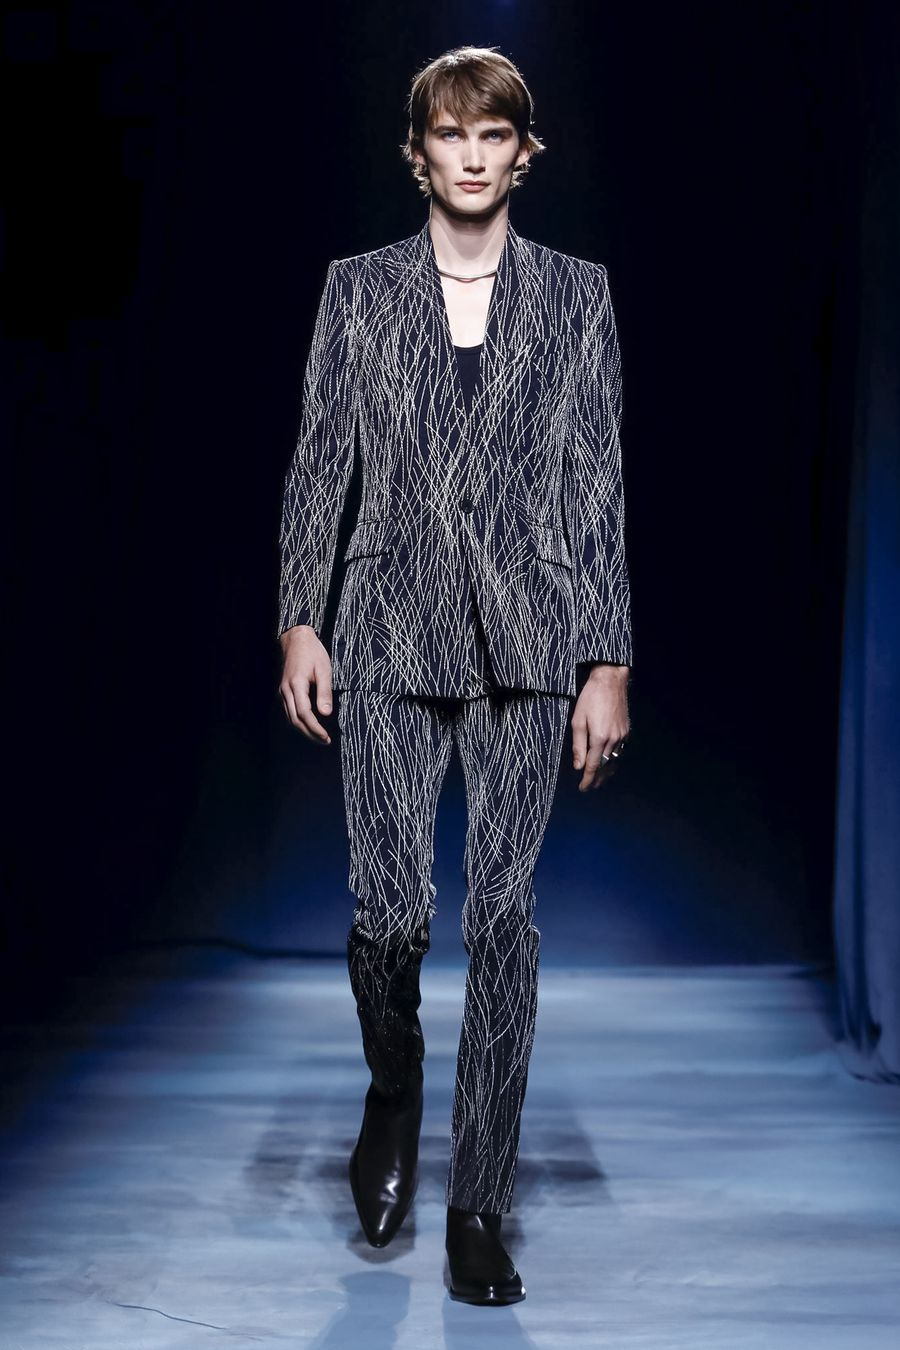 Givenchy SS19 menswear Clare Waight Keller pattern suit